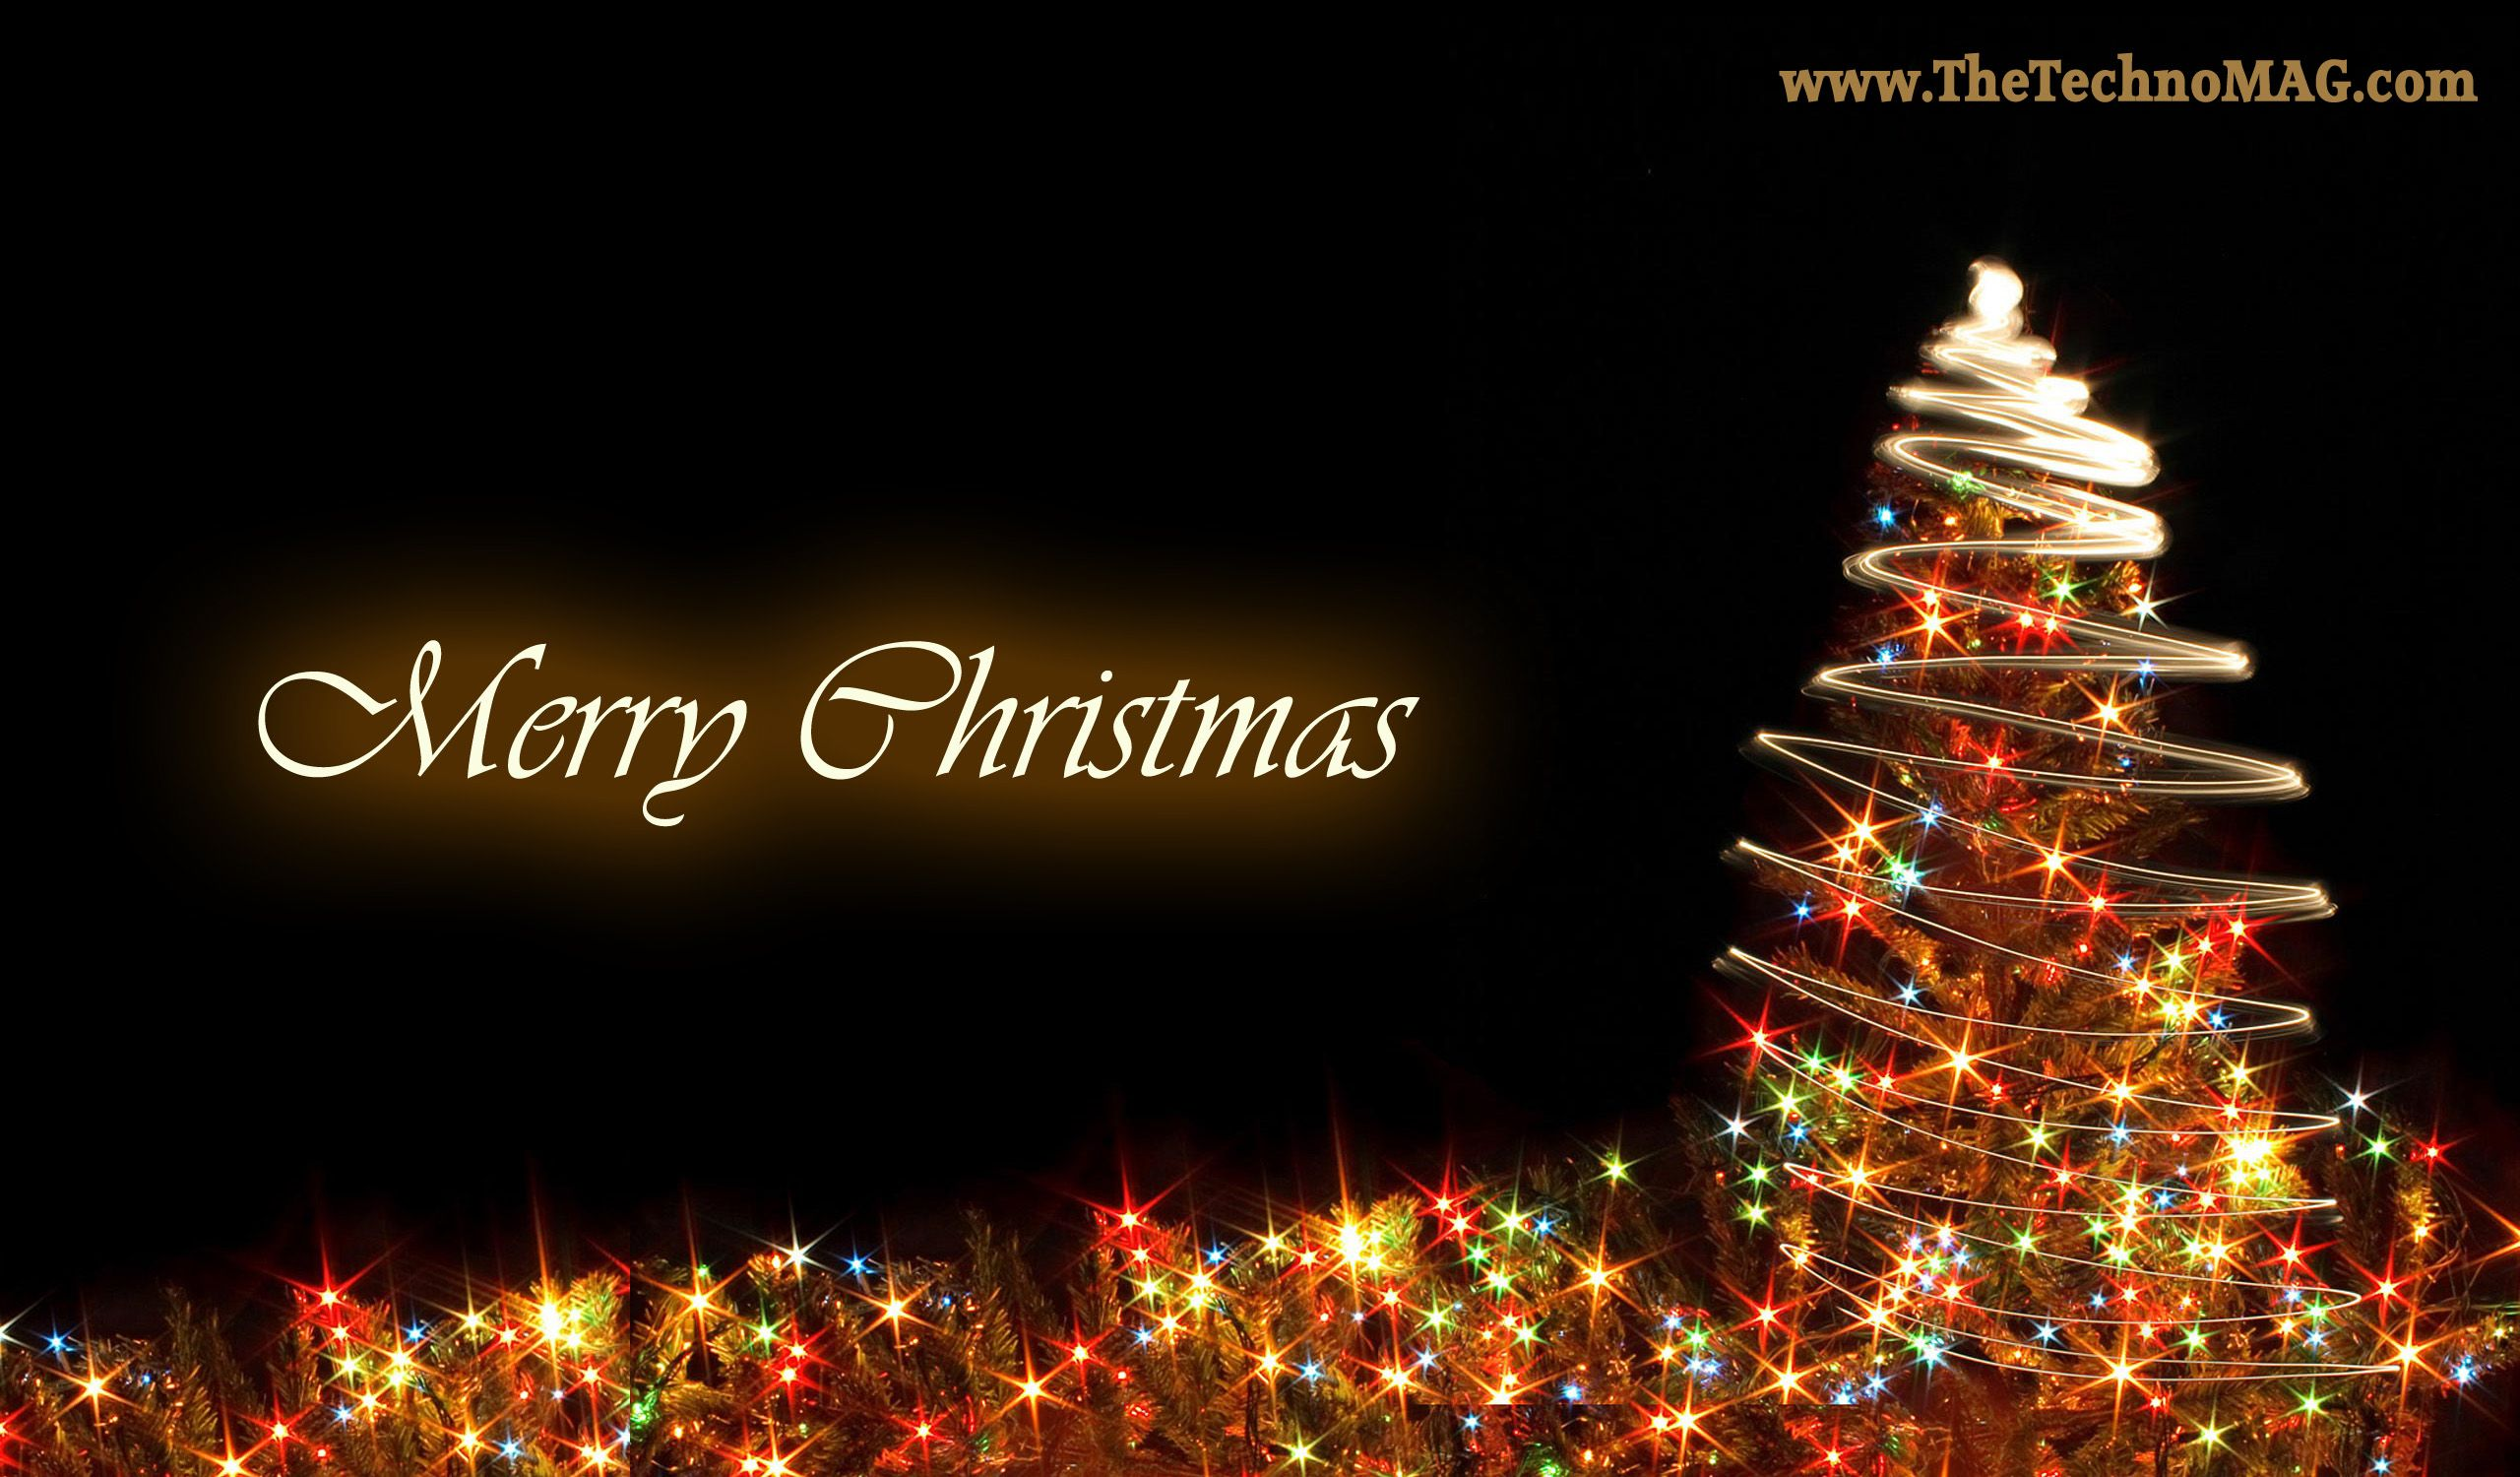 Christmas Tree Images Free Download.Merry Christmas Tree Free Download Wallpaper 2018